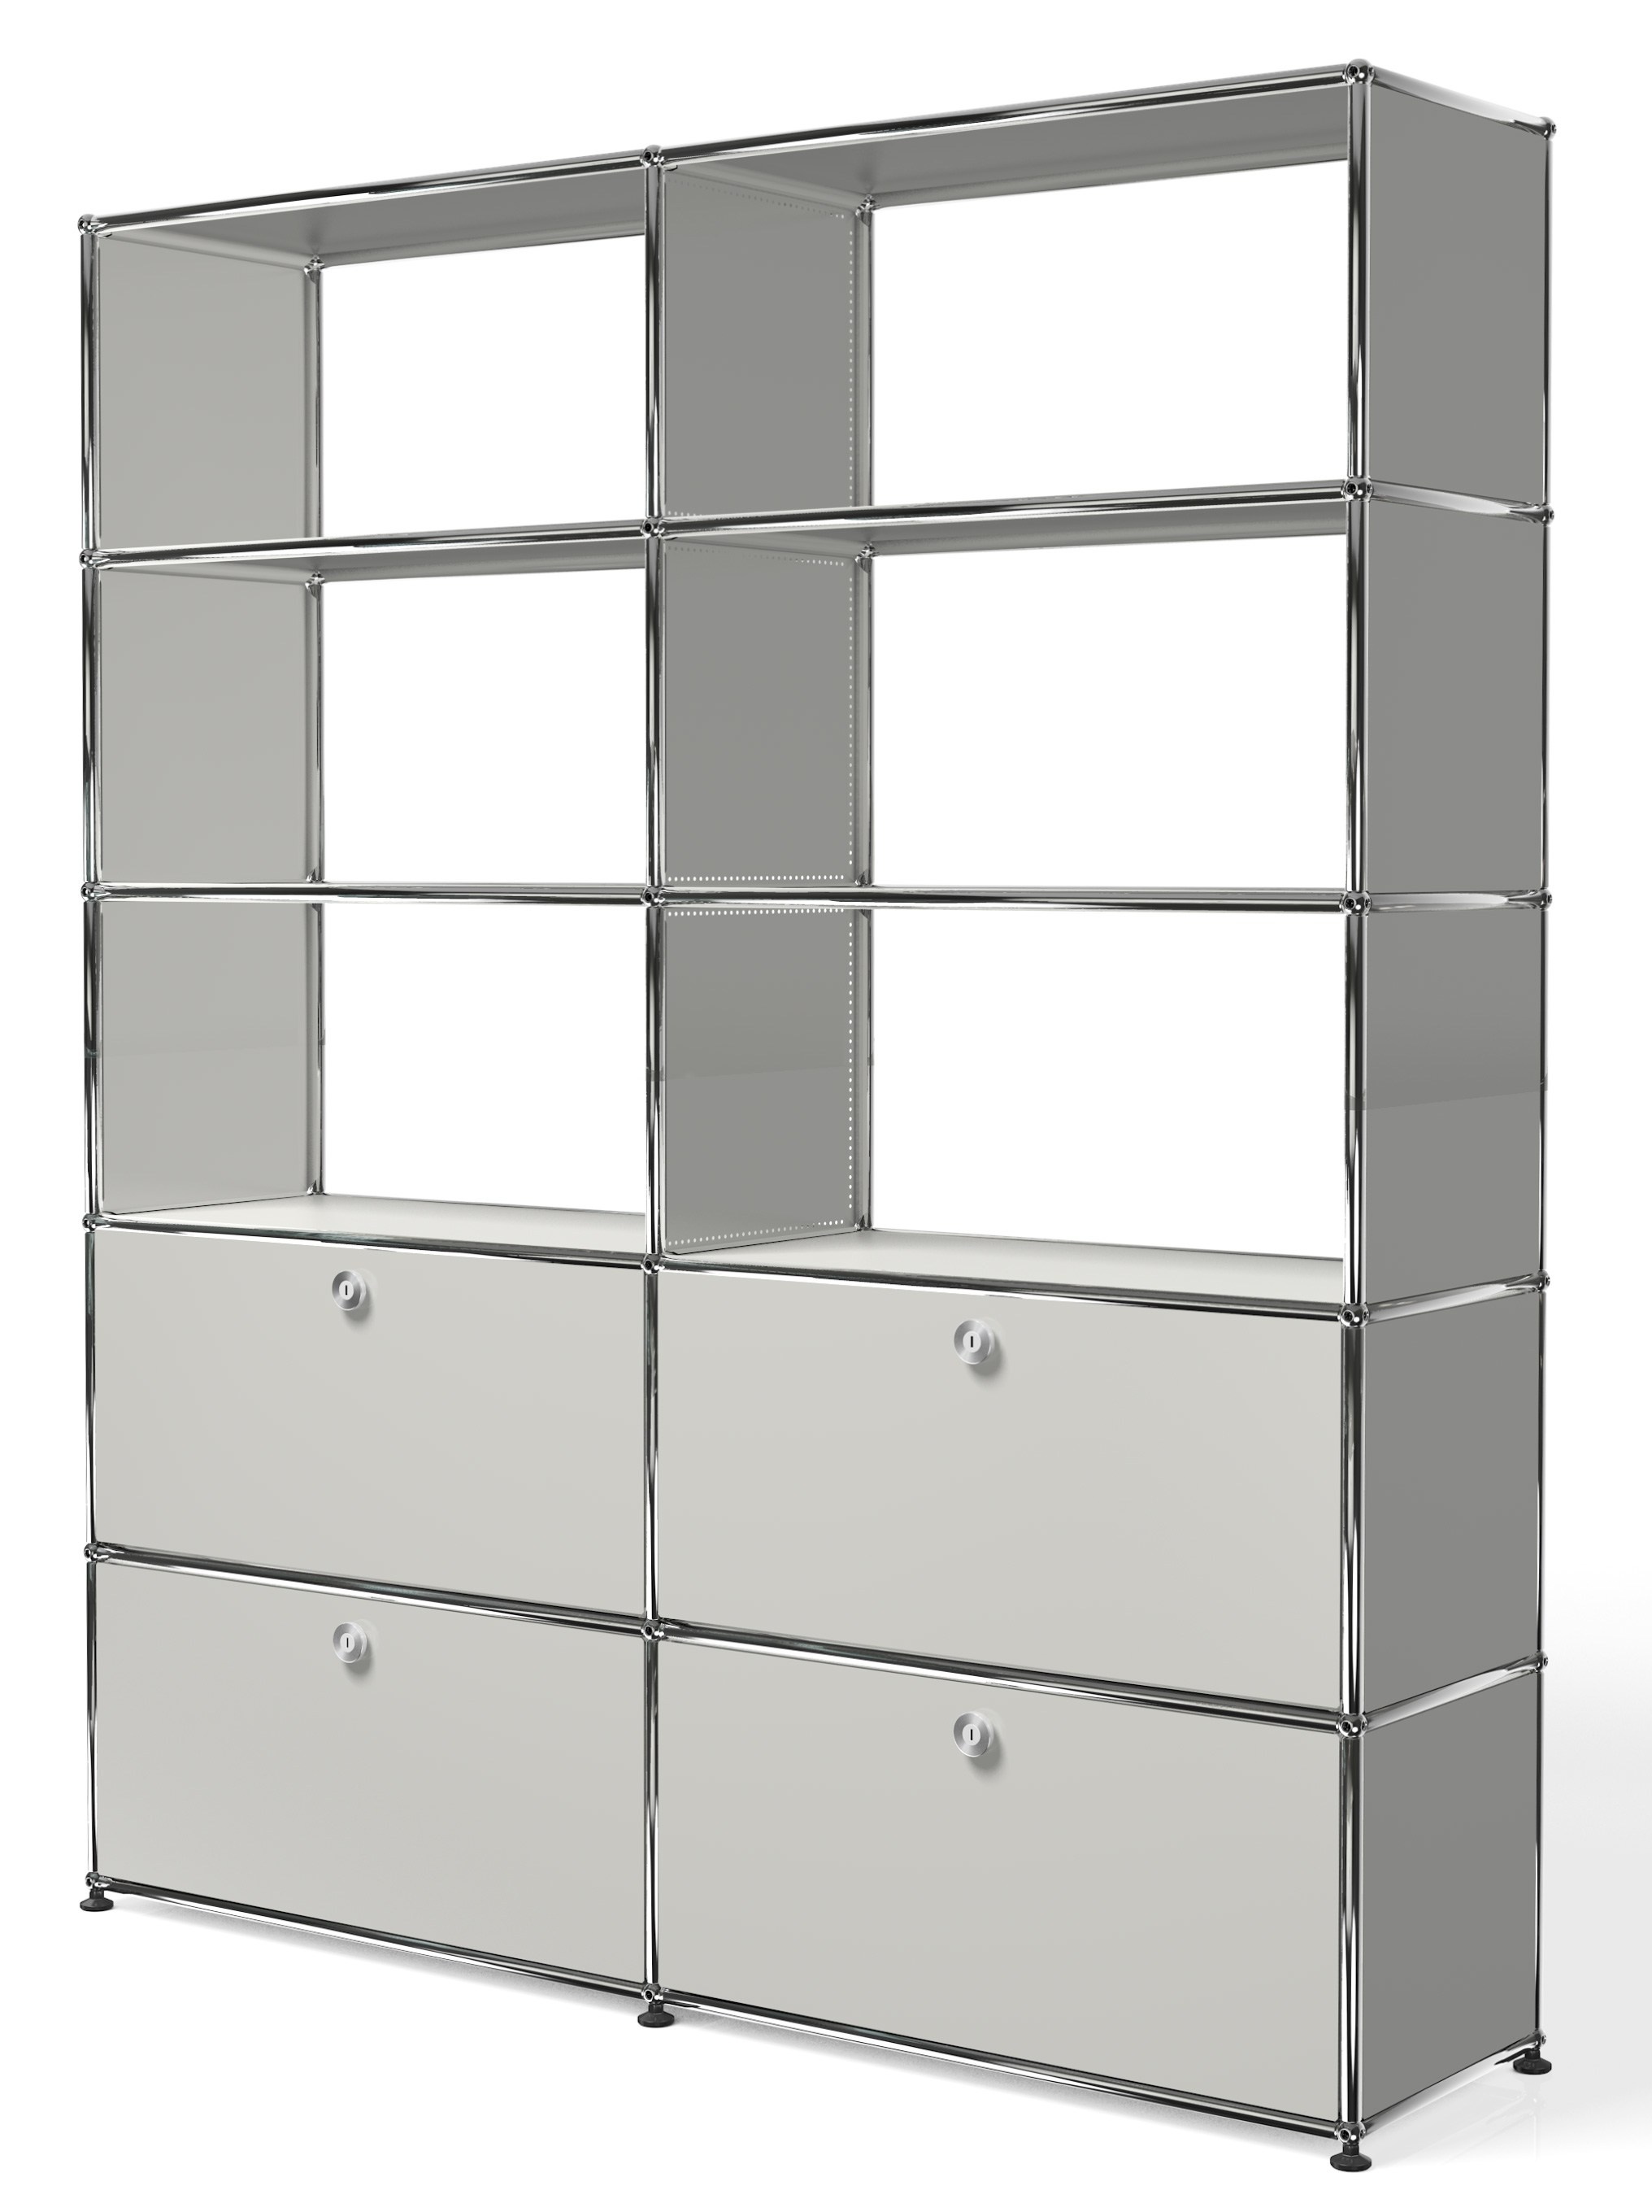 Regalsystem Metall Usm Haller Bookshelves Regalsystem By Usm Modular Furniture